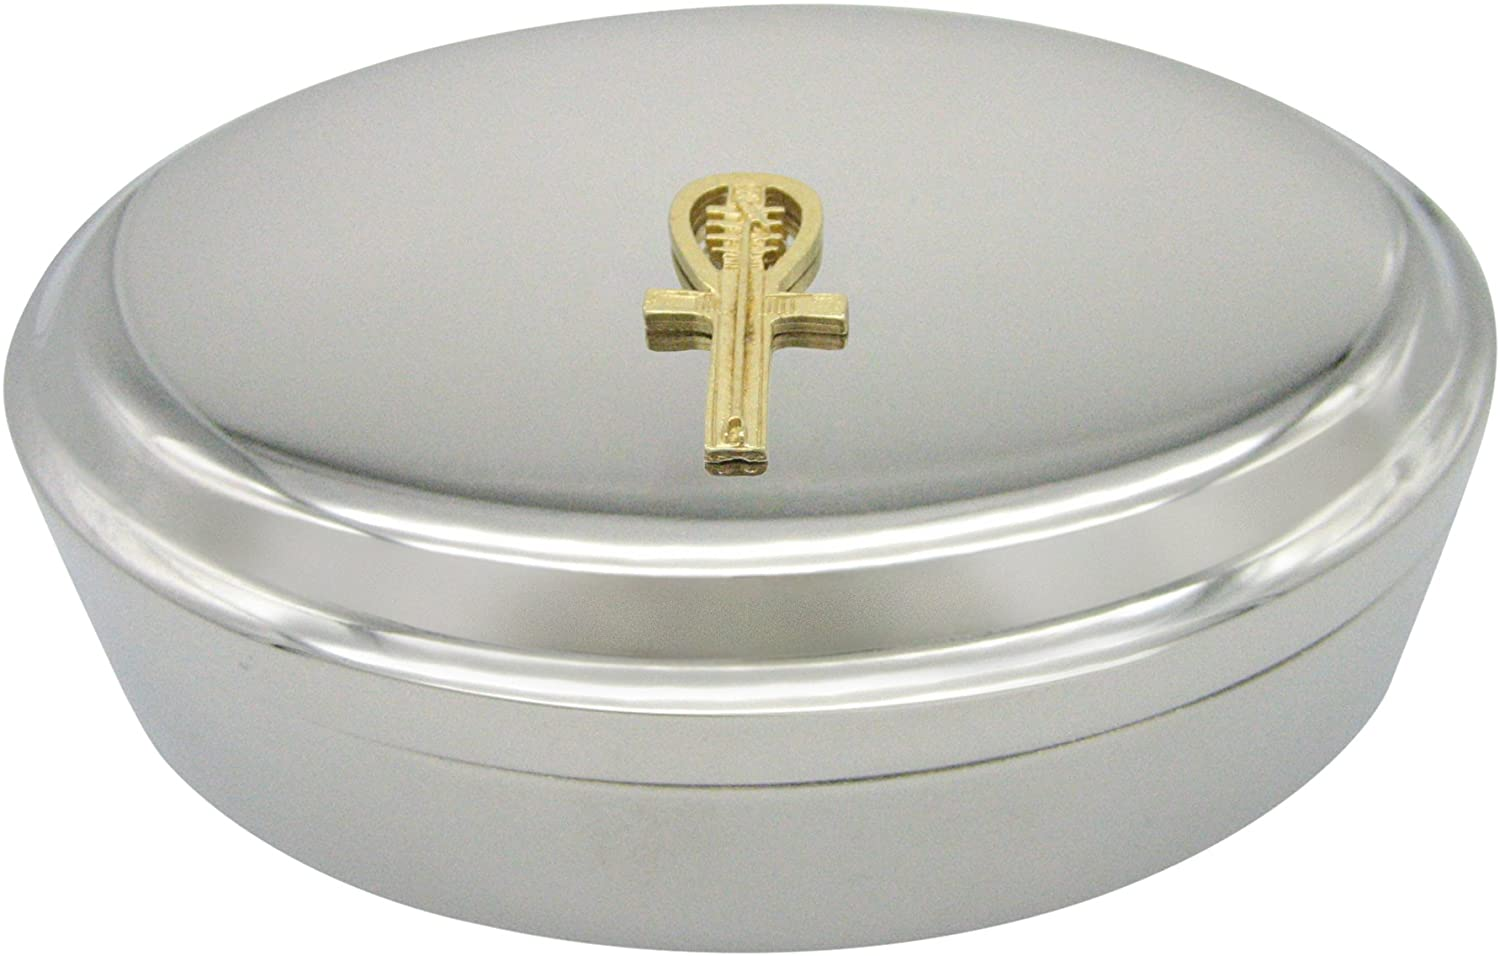 Kiola Designs Gold Toned Egyptian Ankh Pendant Oval Trinket Jewelry Box